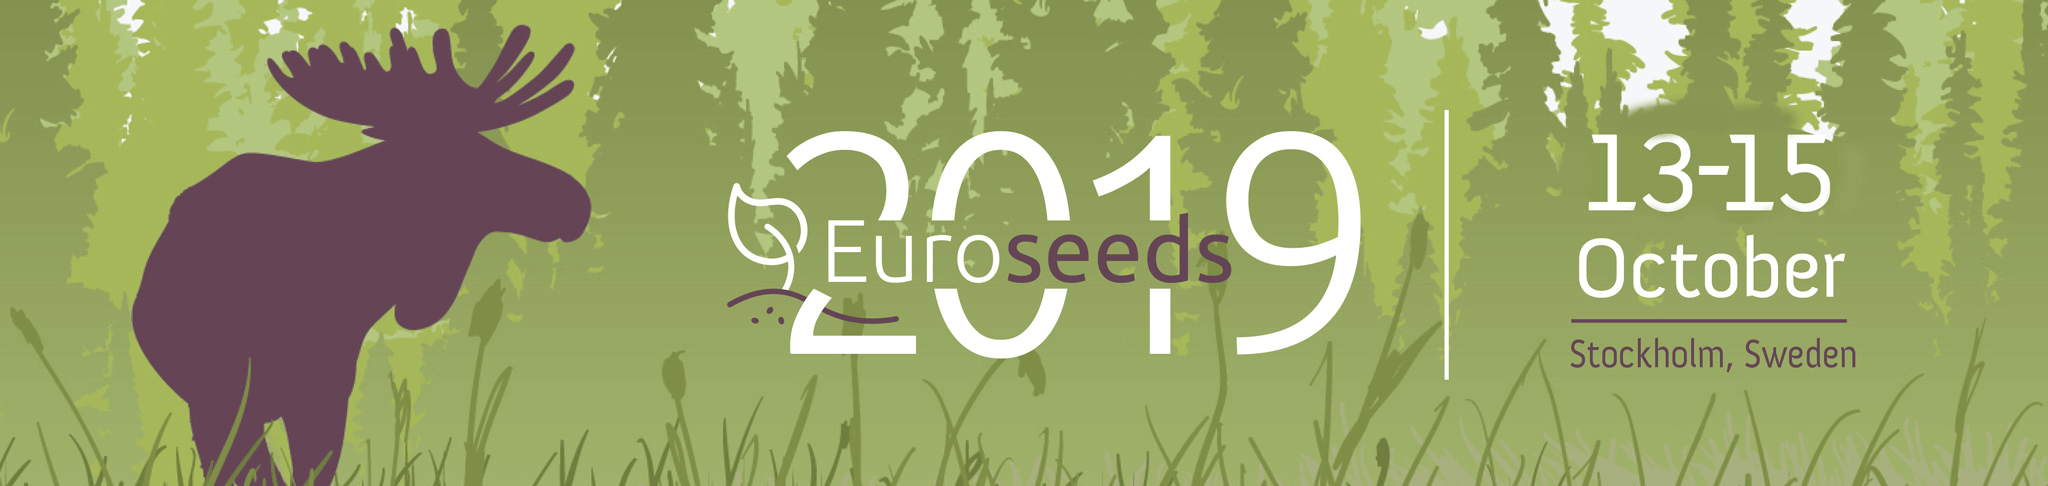 Euroseeds Congress 2019 - Stockholm - Sunday 13  › Wednesday 16 October 2019